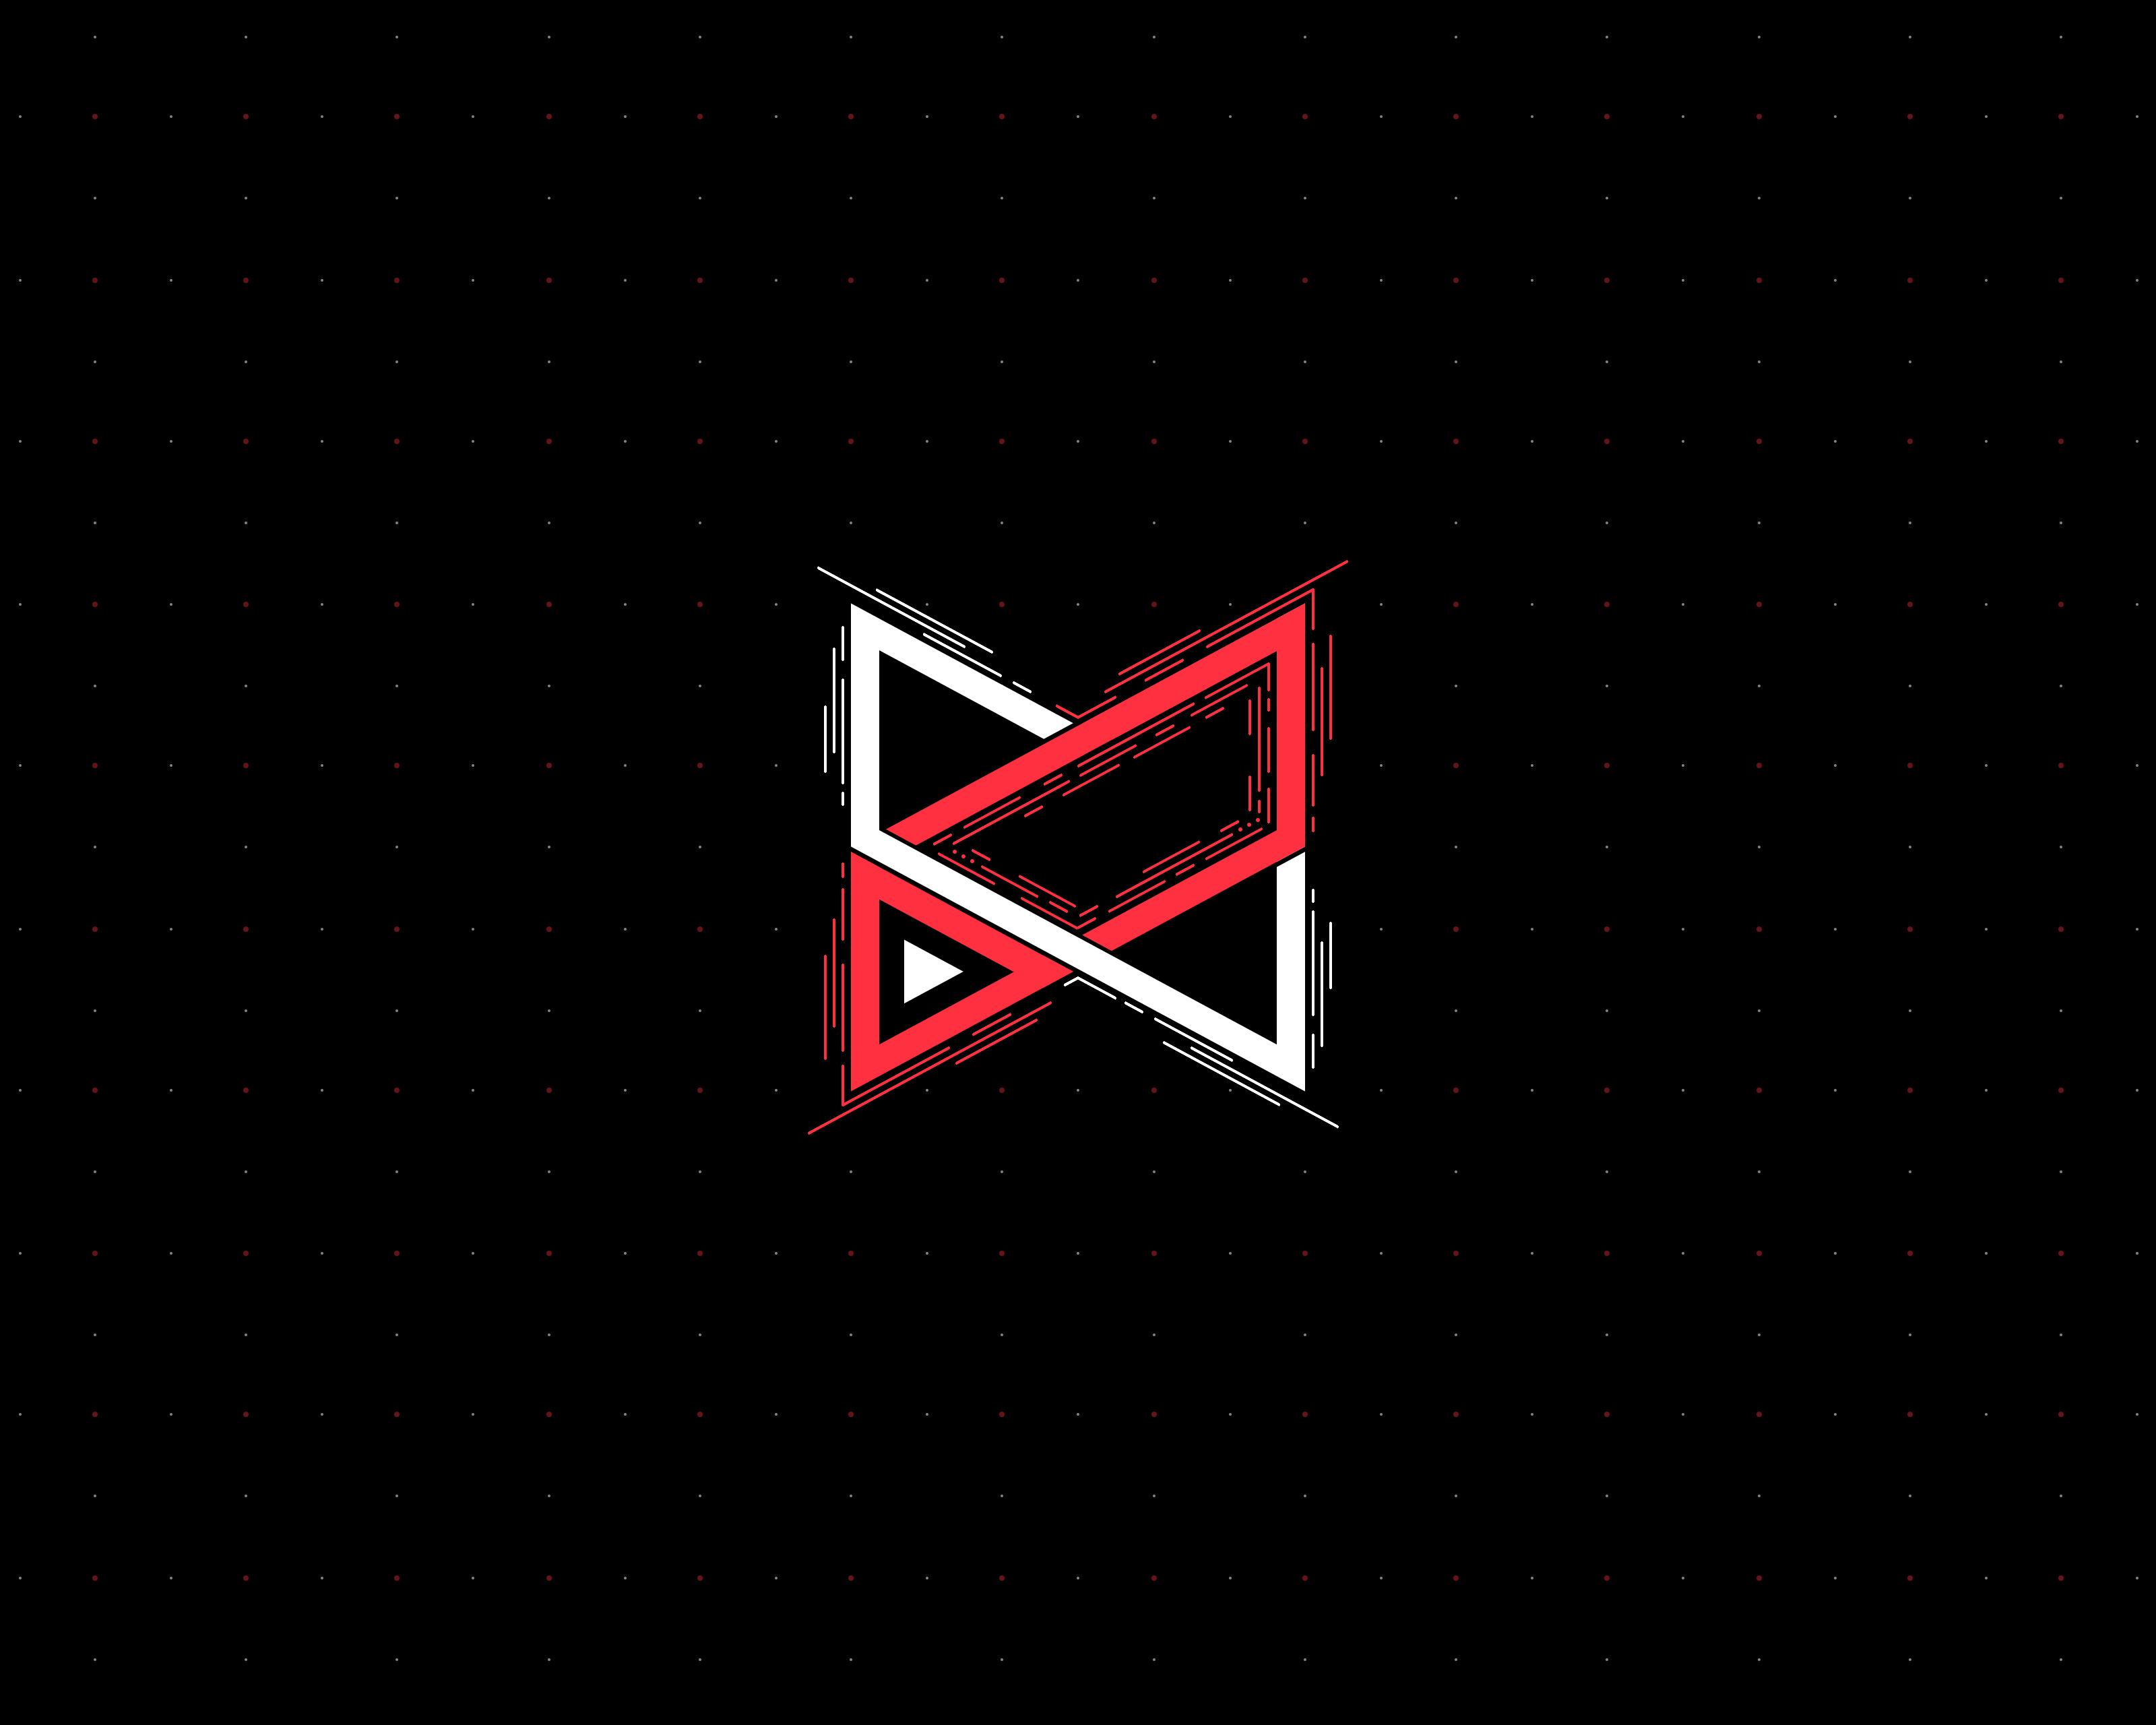 mkbhd logo 4k, hd logo, 4k wallpapers, images, backgrounds, photos